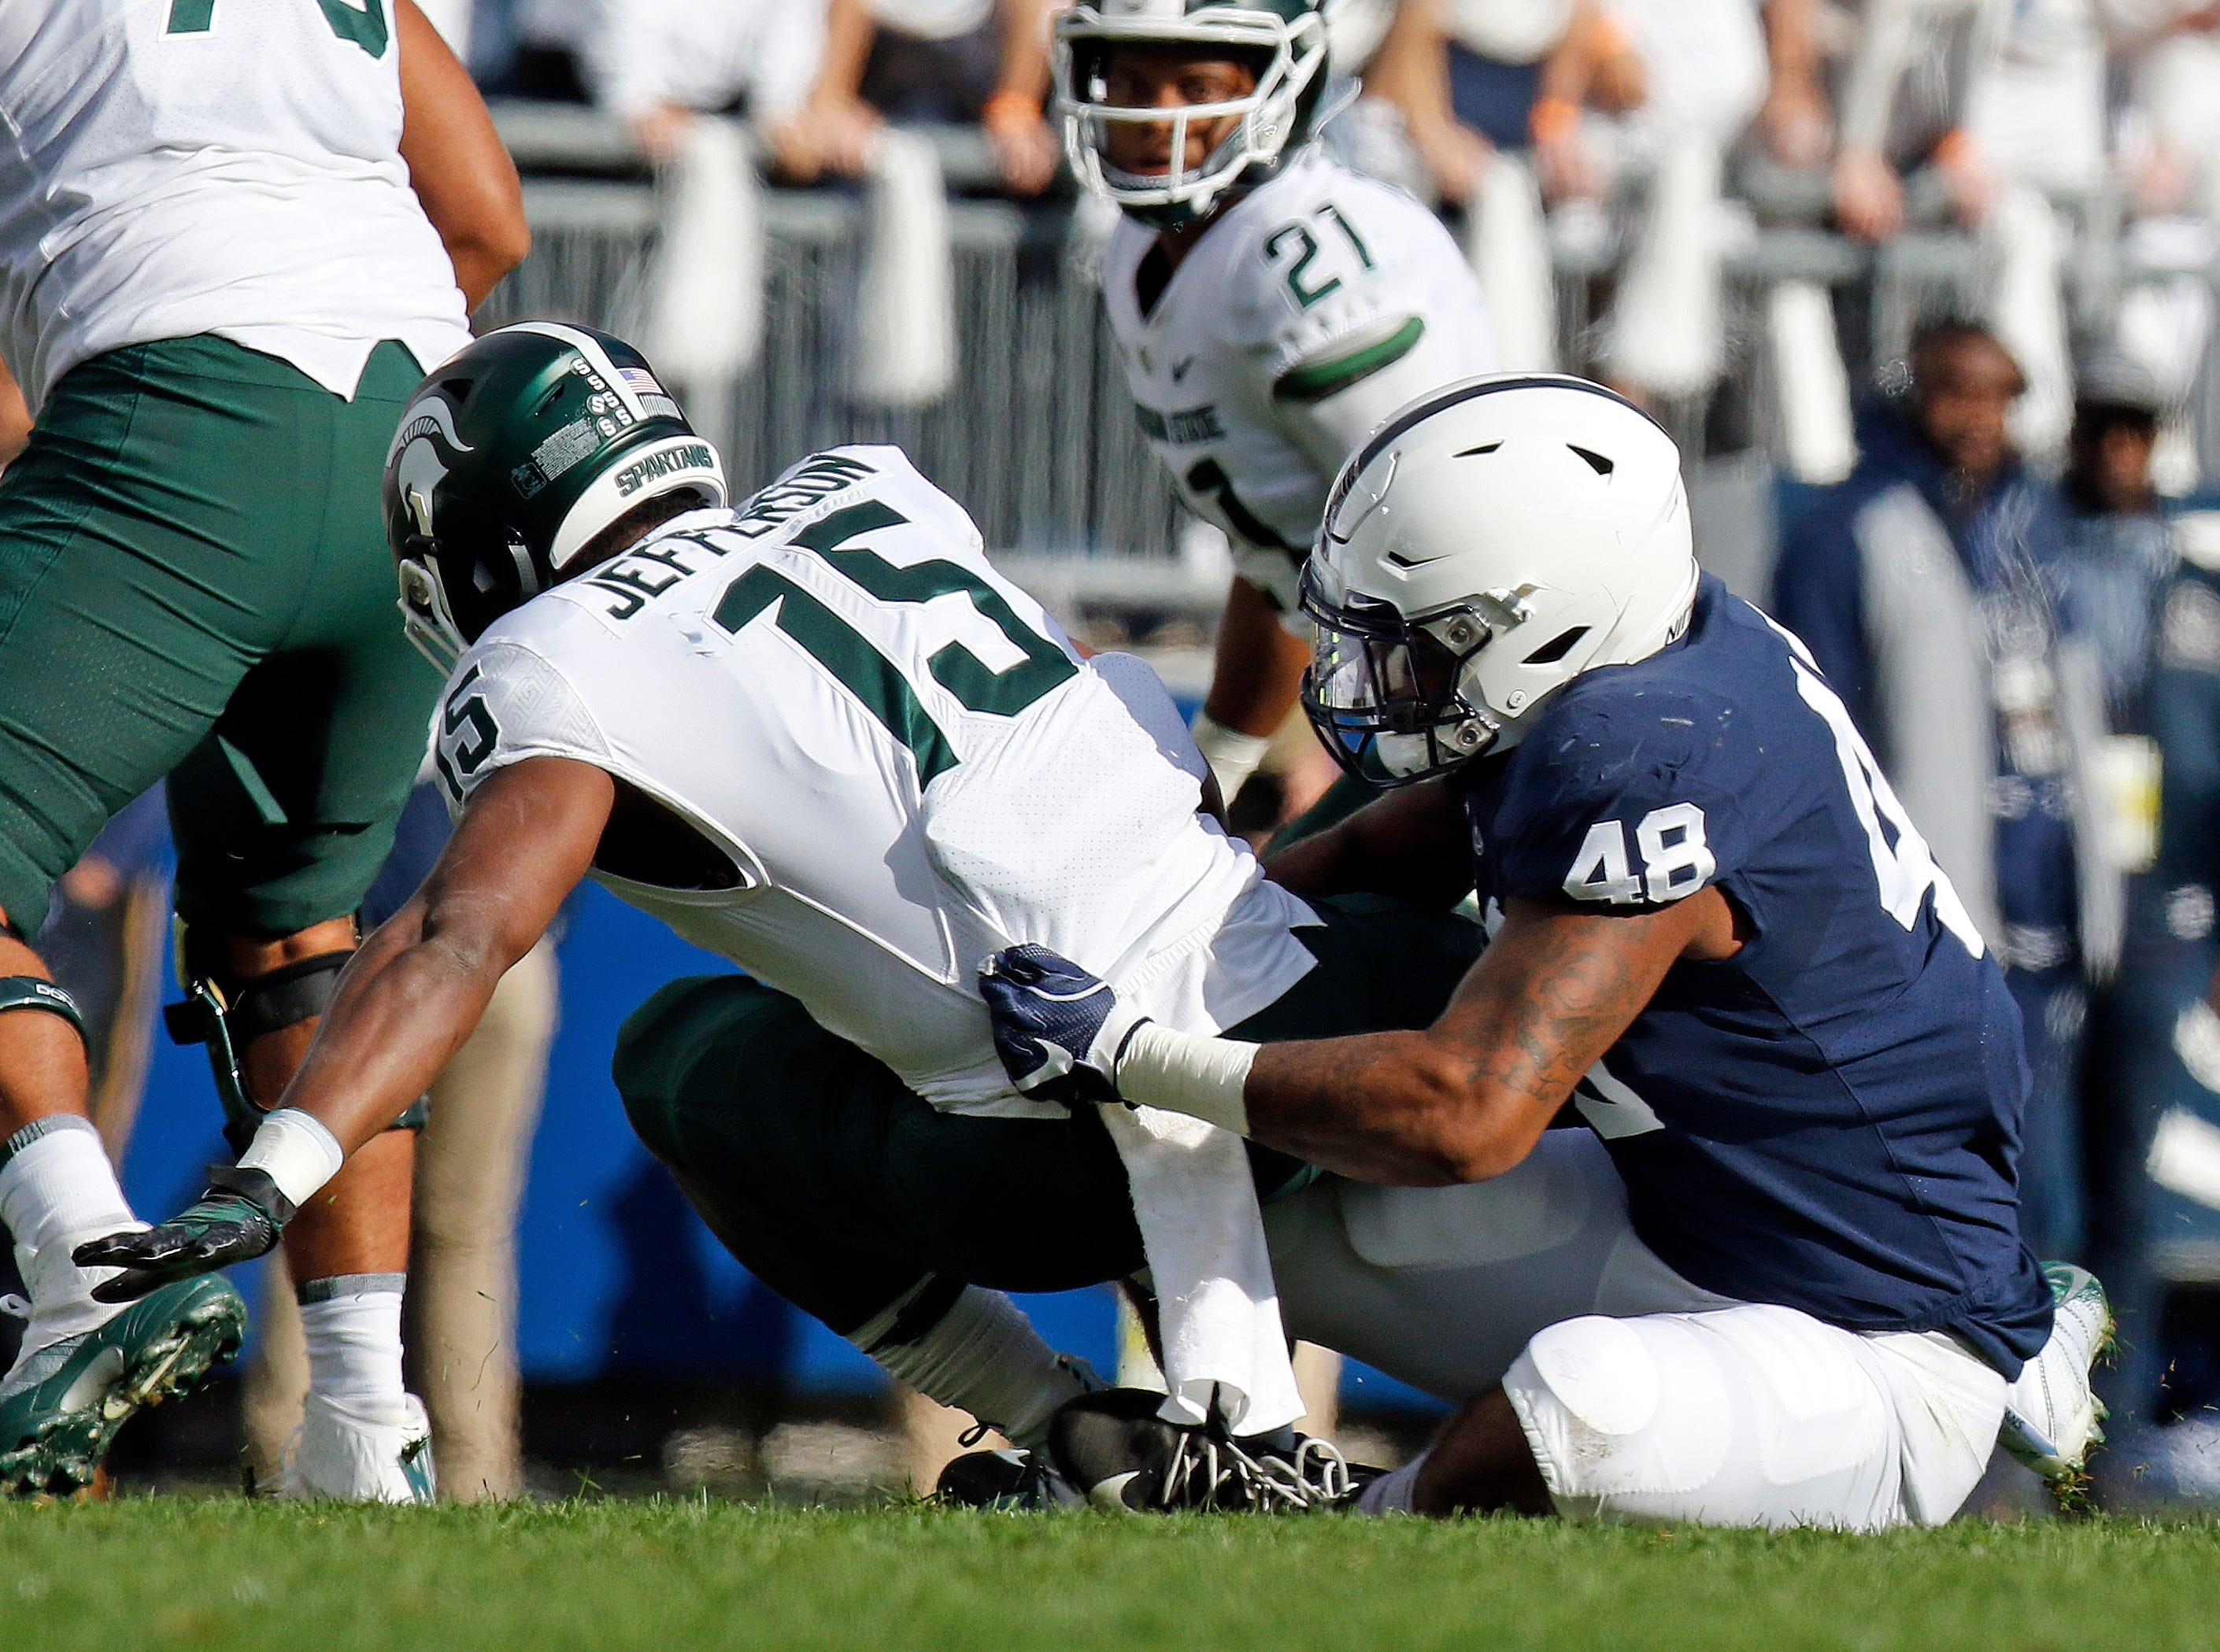 STATE COLLEGE, PA - OCTOBER 13:  Shareef Miller #48 of the Penn State Nittany Lions tackles La'Darius Jefferson #15 of the Michigan State Spartans on October 13, 2018 at Beaver Stadium in State College, Pennsylvania.  (Photo by Justin K. Aller/Getty Images)